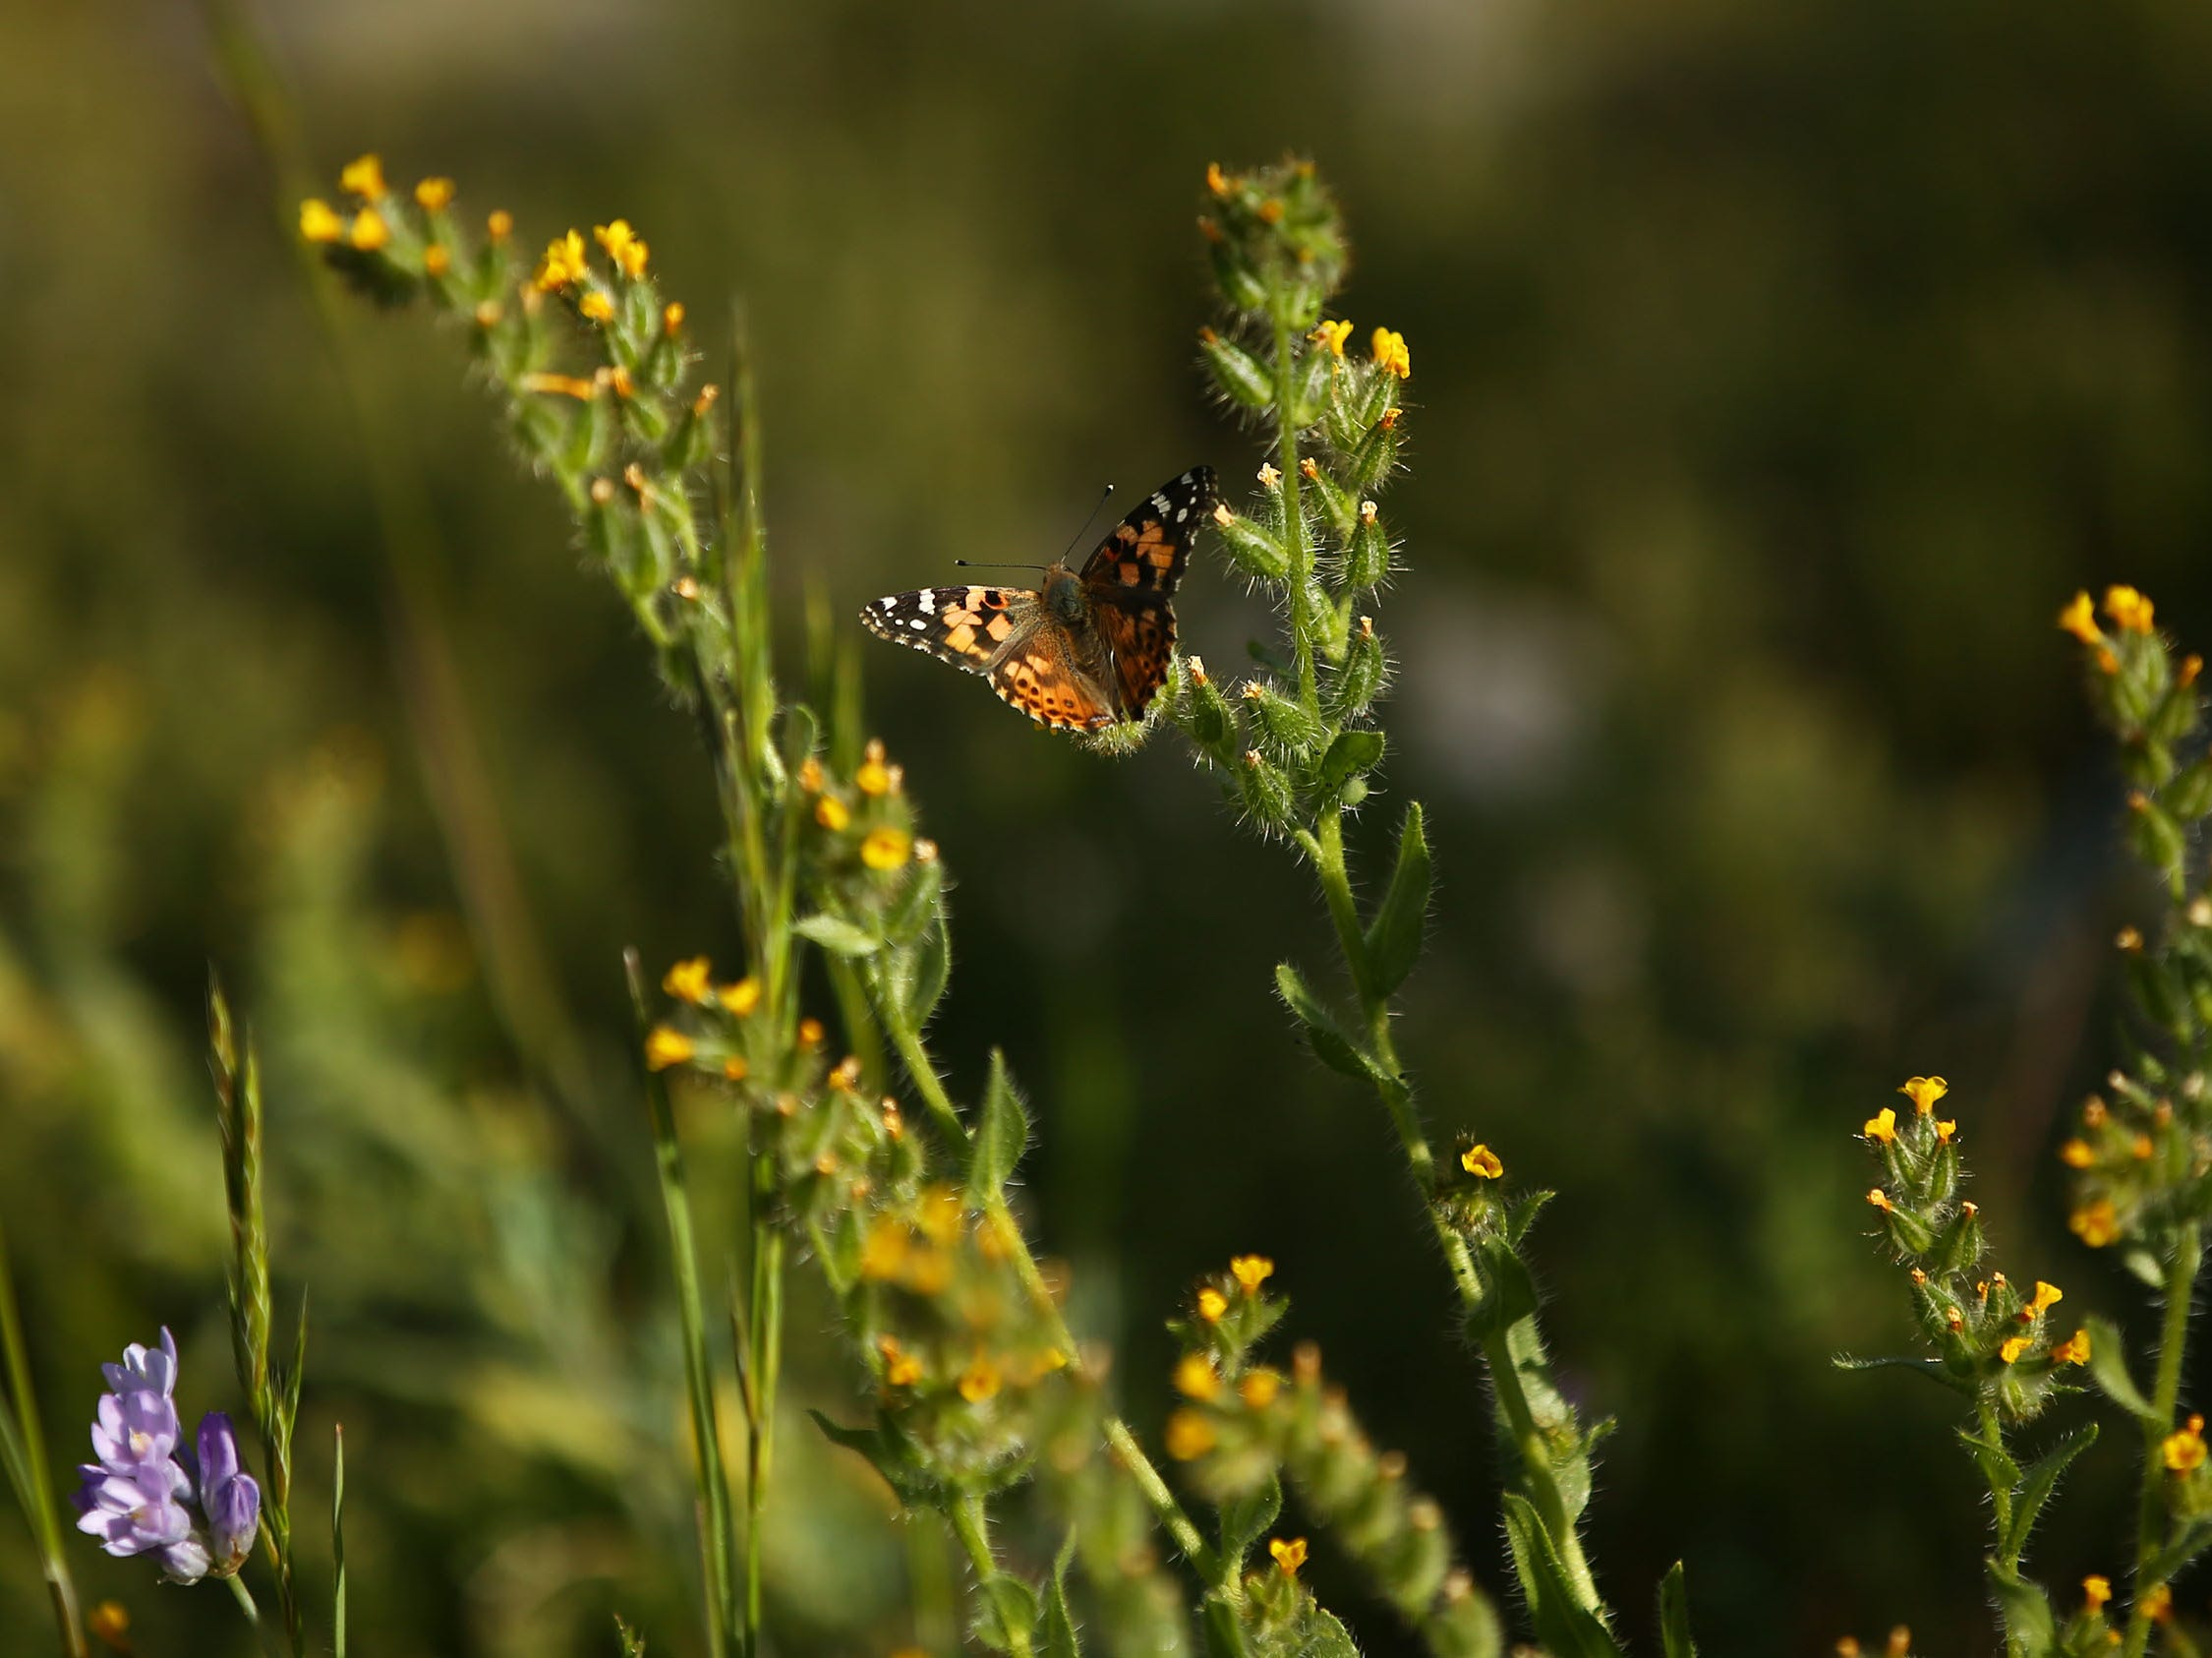 A butterfly lands on a stalk of fiddleneck bloom in South Mountain Park on March 6, 2019, in Phoenix.